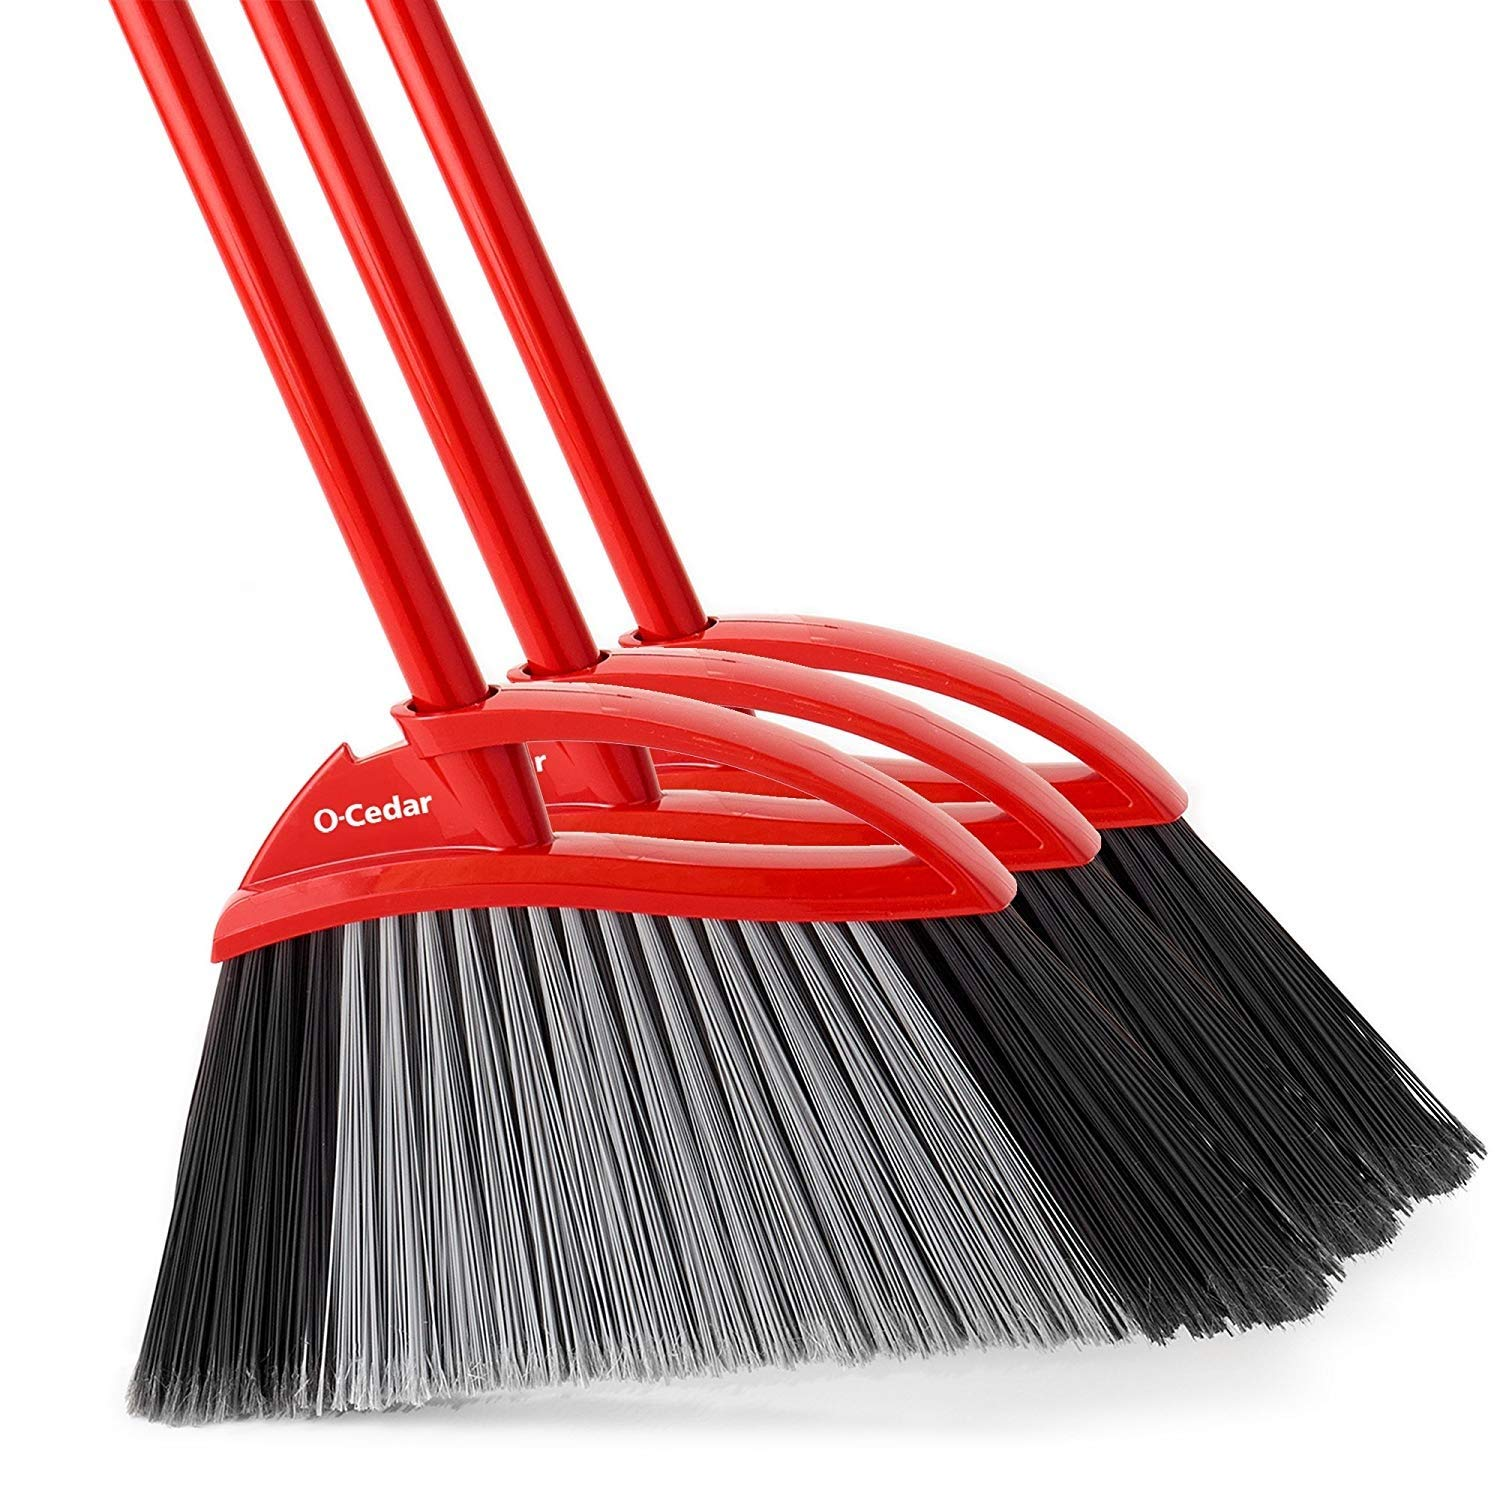 O-Cedar Power Corner Large Angle Broom (Pack of 3) by O-Cedar (Image #1)